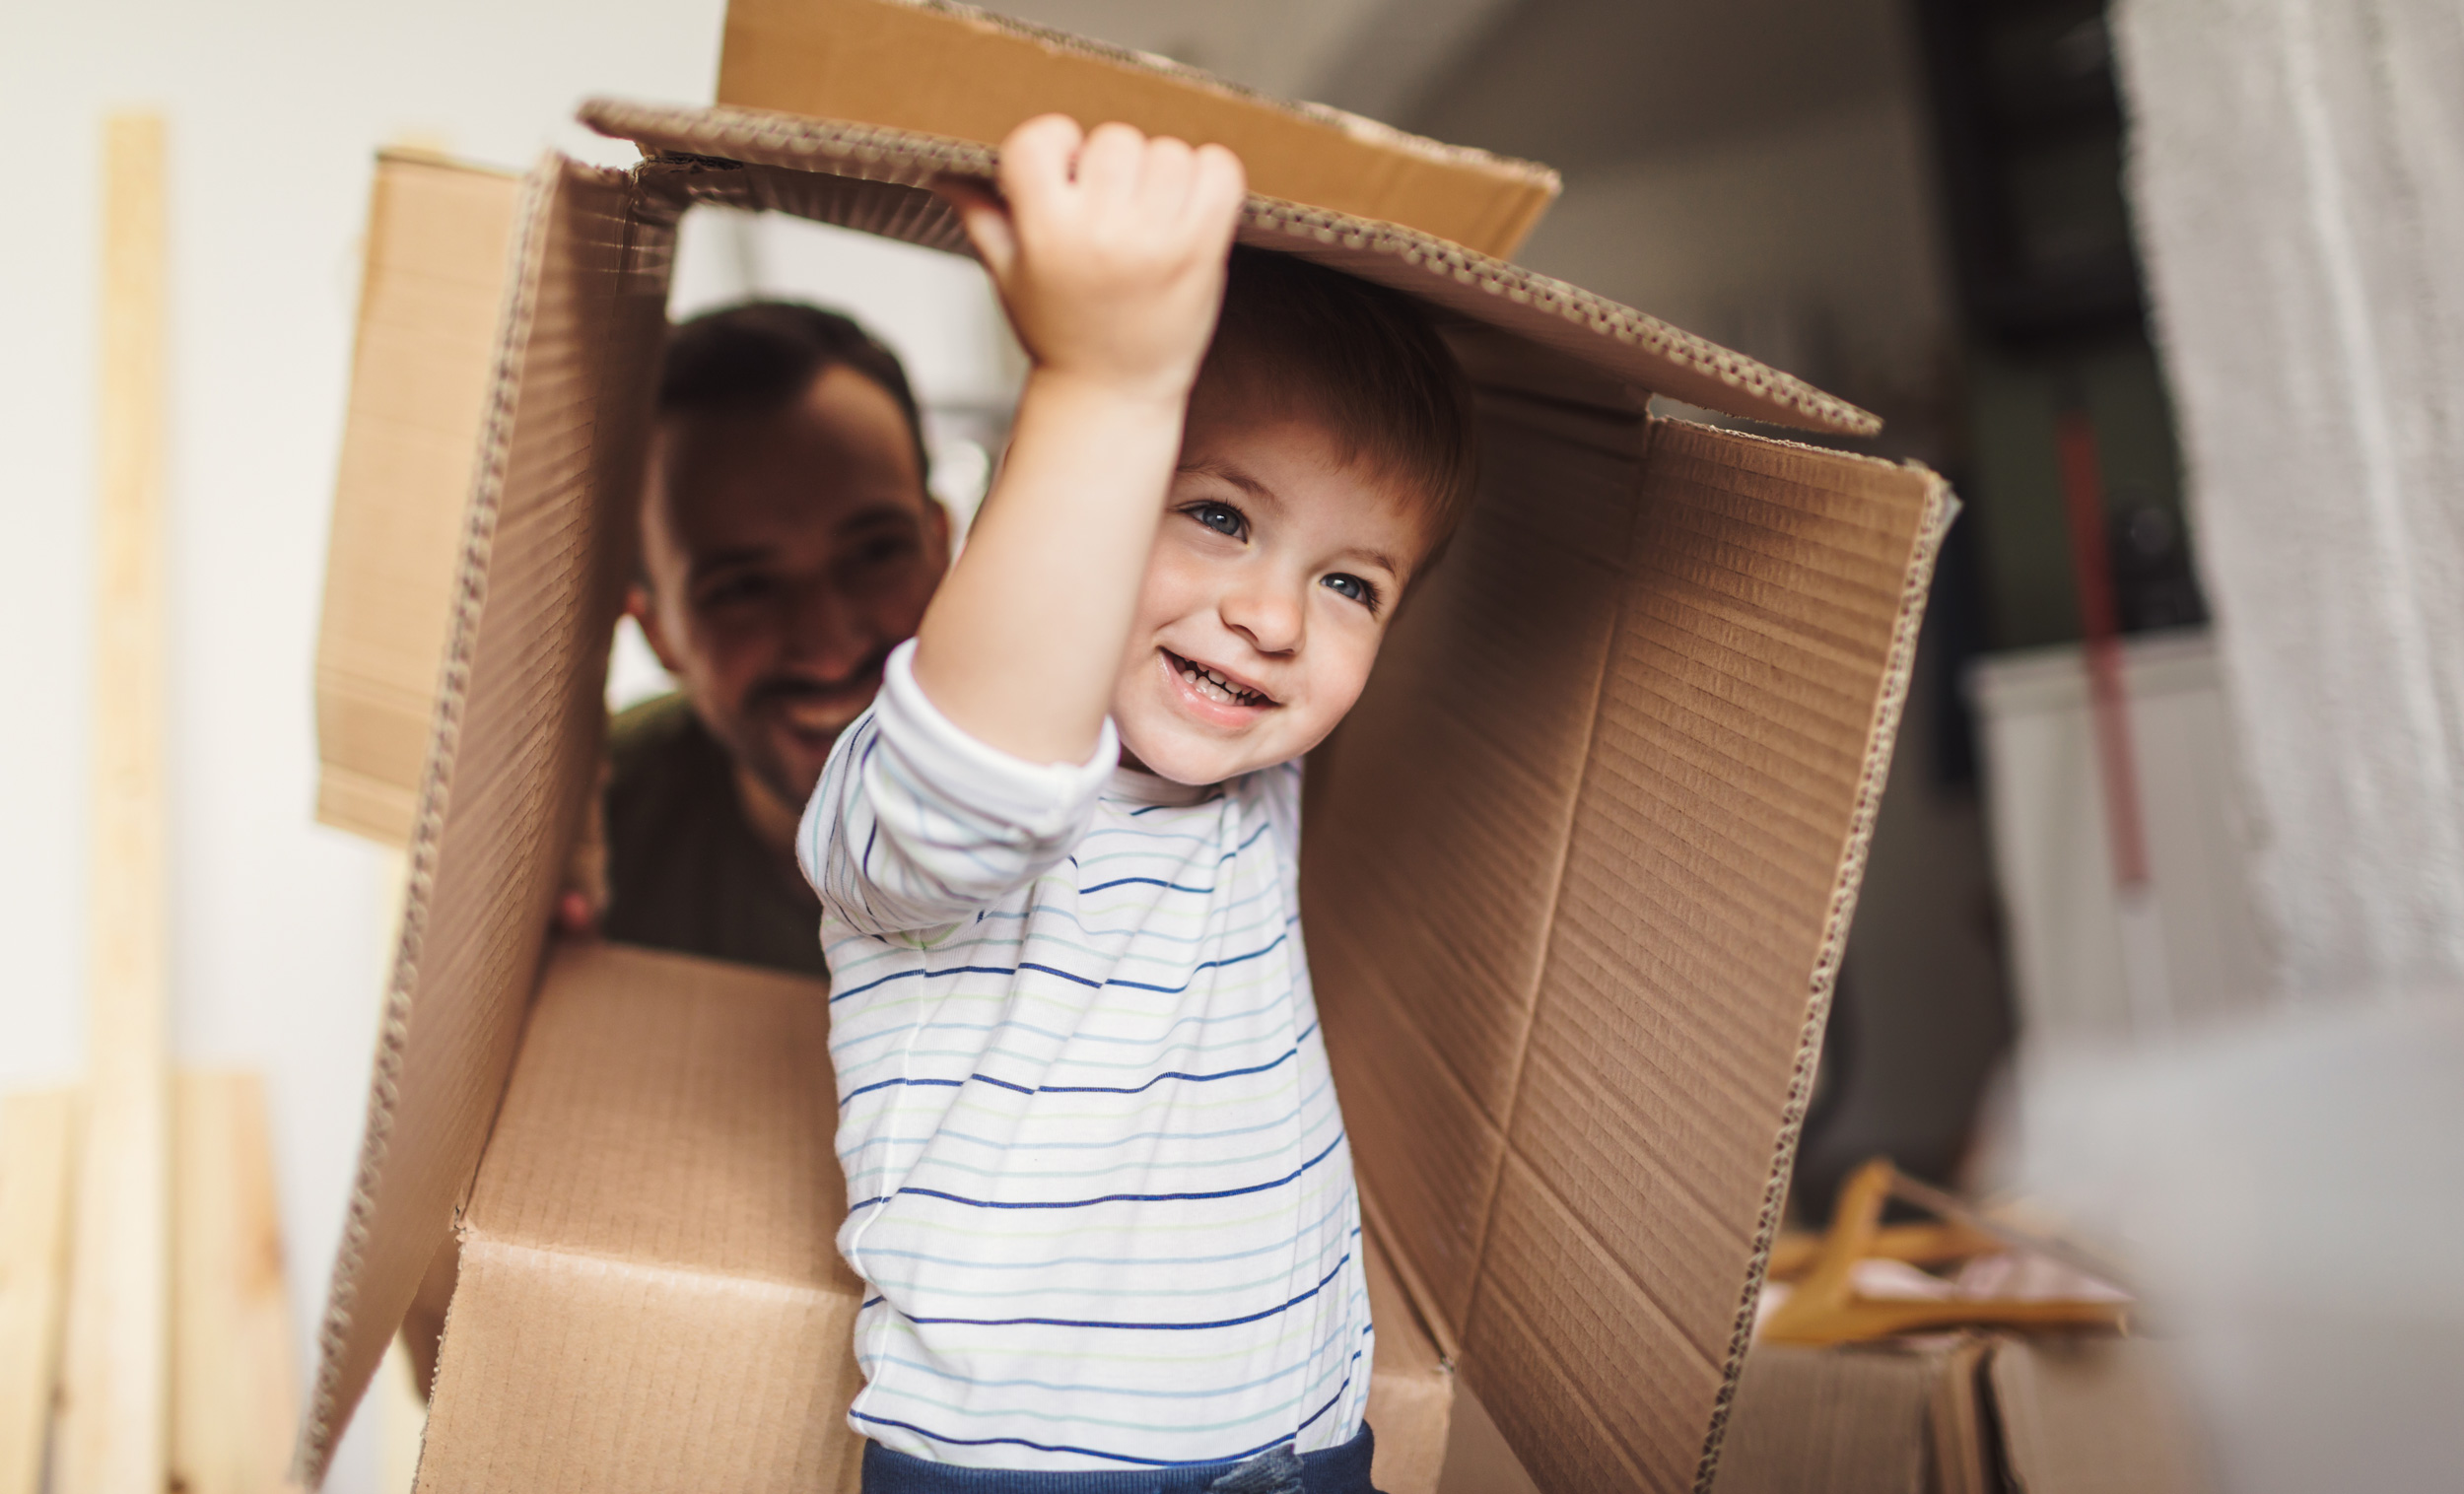 Picture of a boy in a box